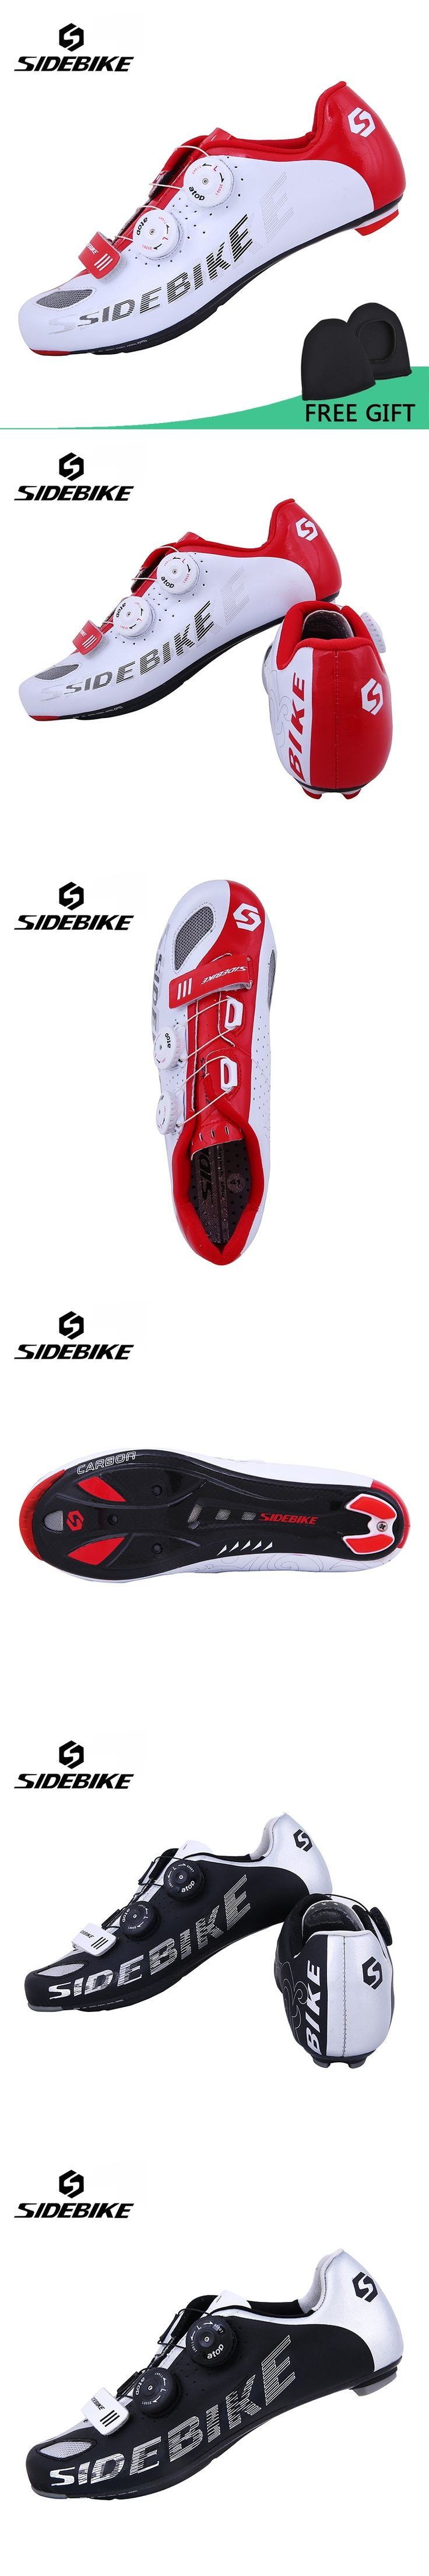 Sidebike Men Road Bike Shoes Self-Locking Ride Bicycle Shoes Carbon Lightweight Highway Lock Cycling Shoes Road Cycling Shoes